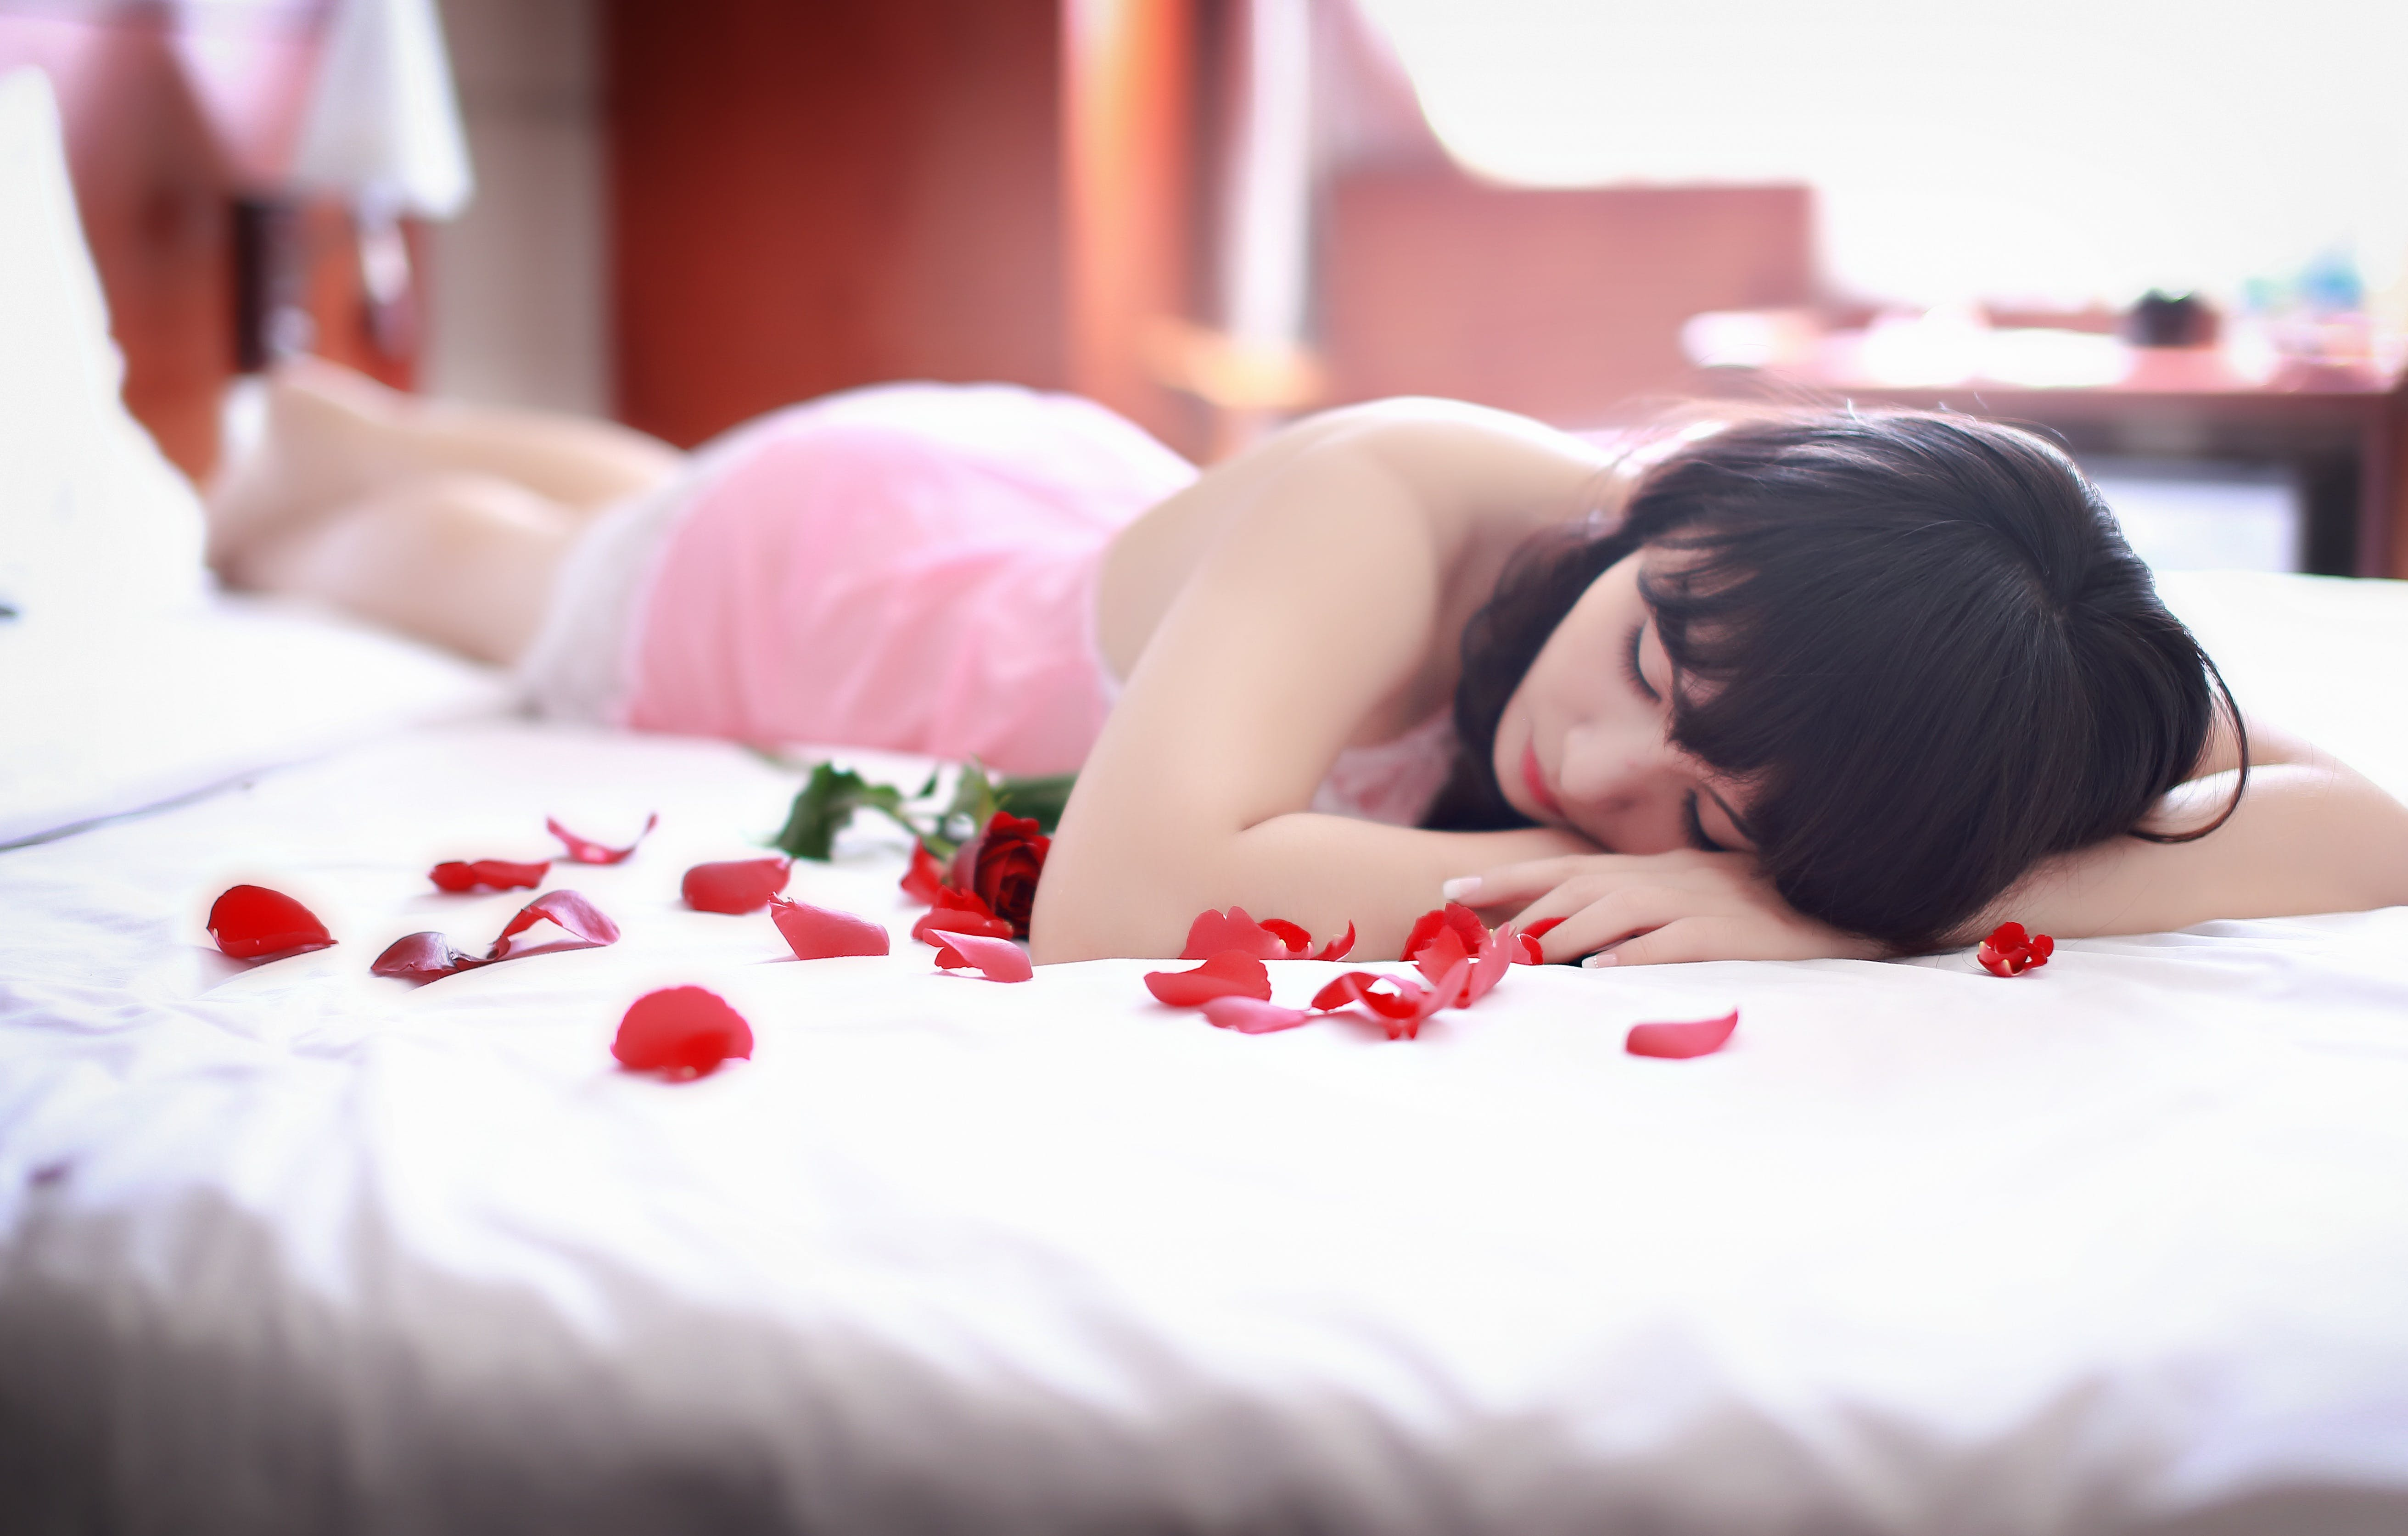 Woman Lying on White Bed With Roses